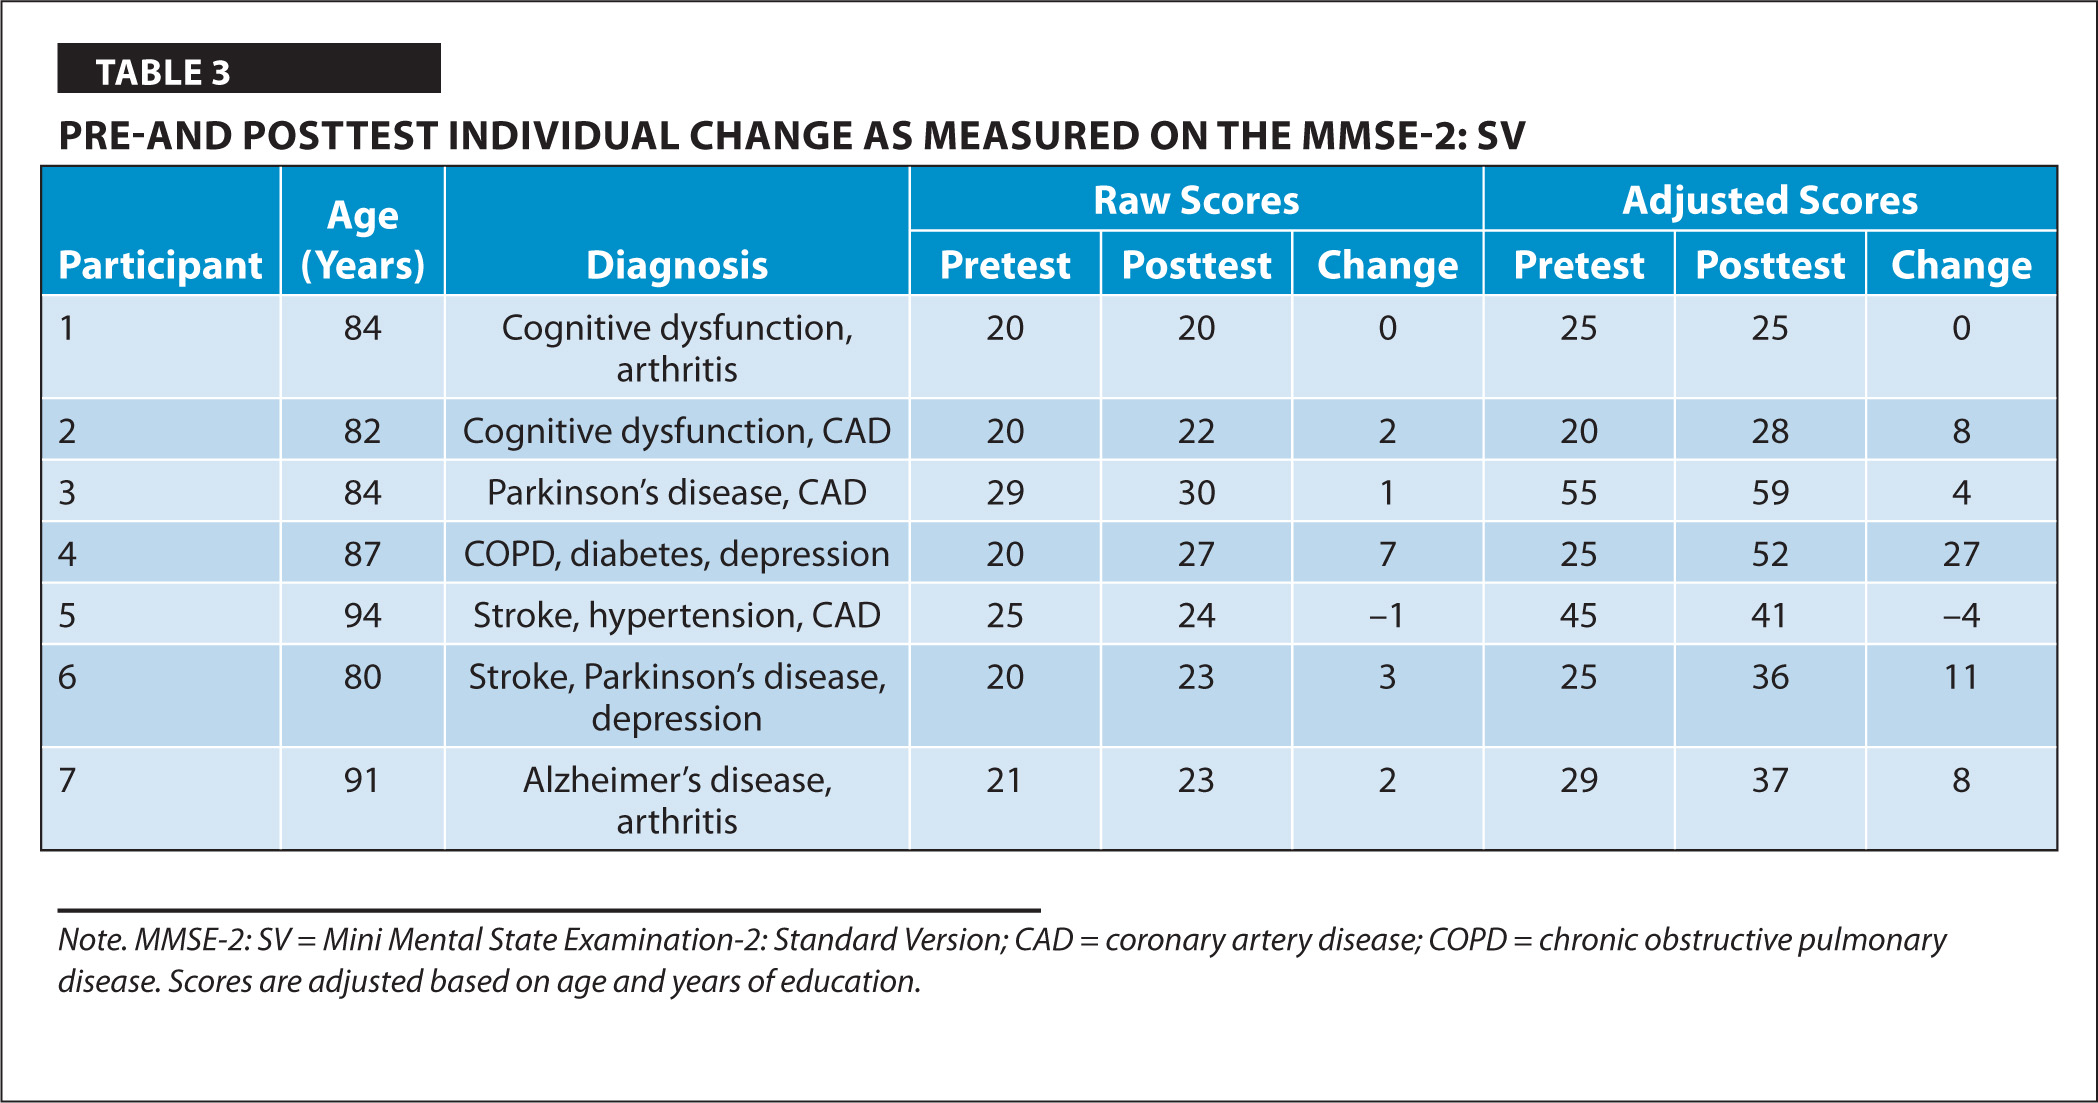 Pre-and Posttest Individual Change as Measured on the MMSE-2: SV